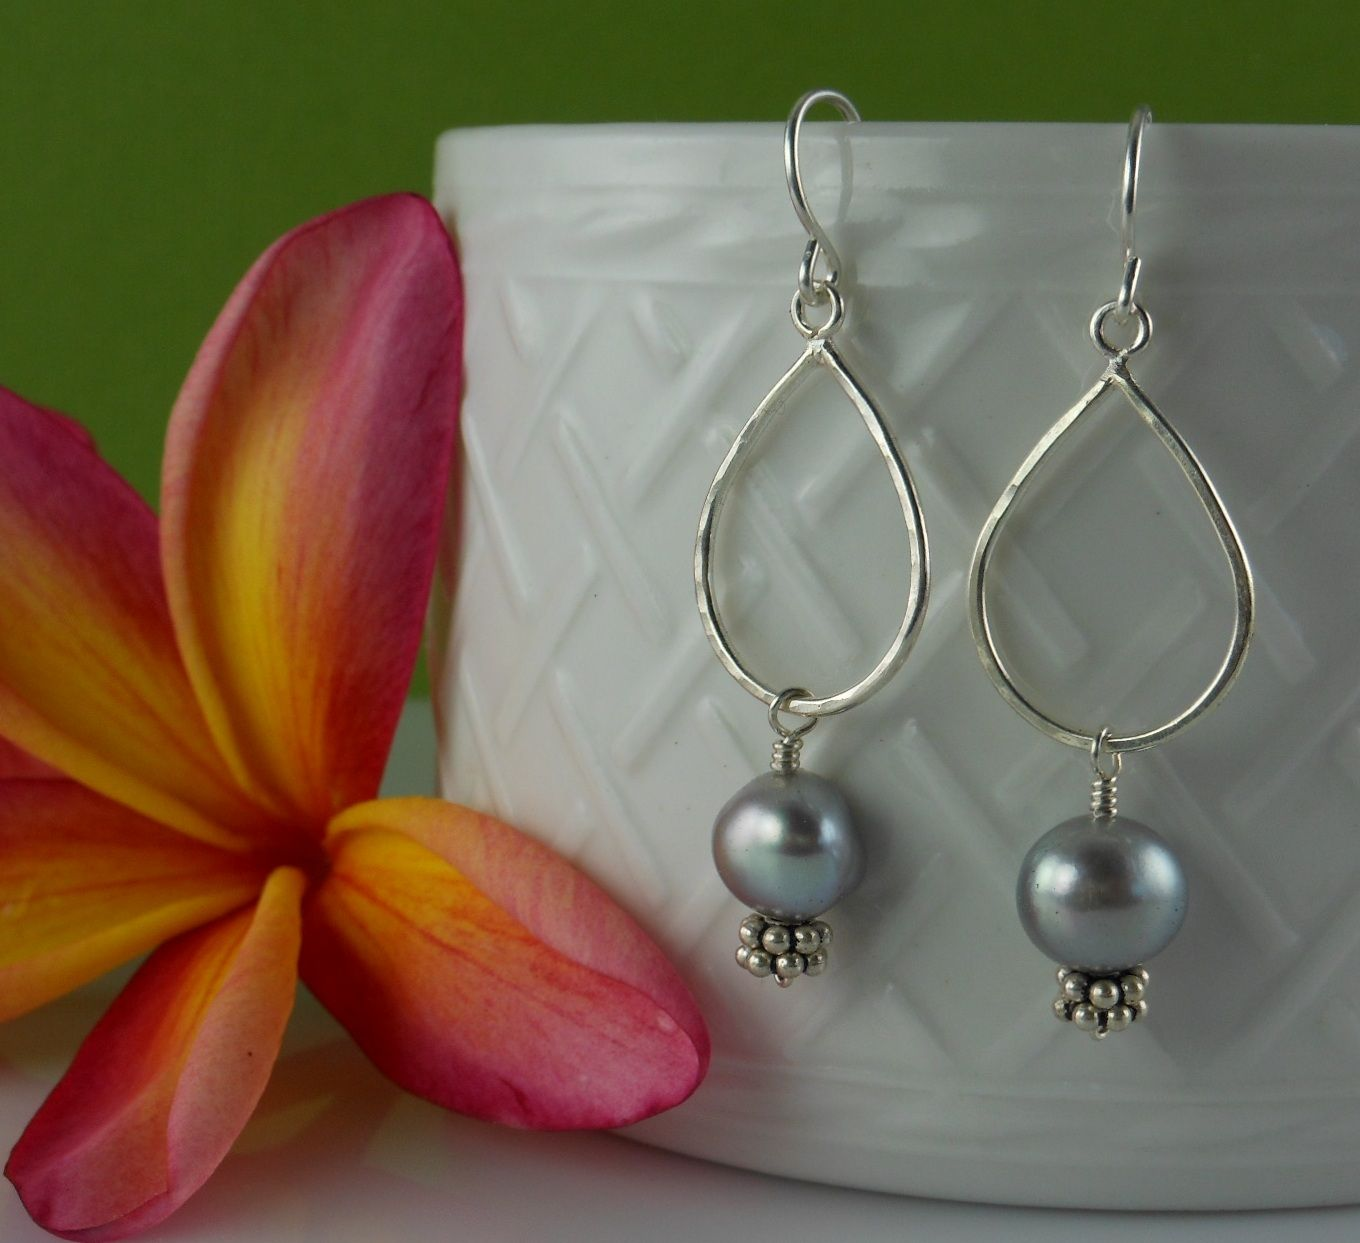 Pearls Bring a sense of inner strength, emotional peace.   925 Silver with Fresh water pearls $22.00